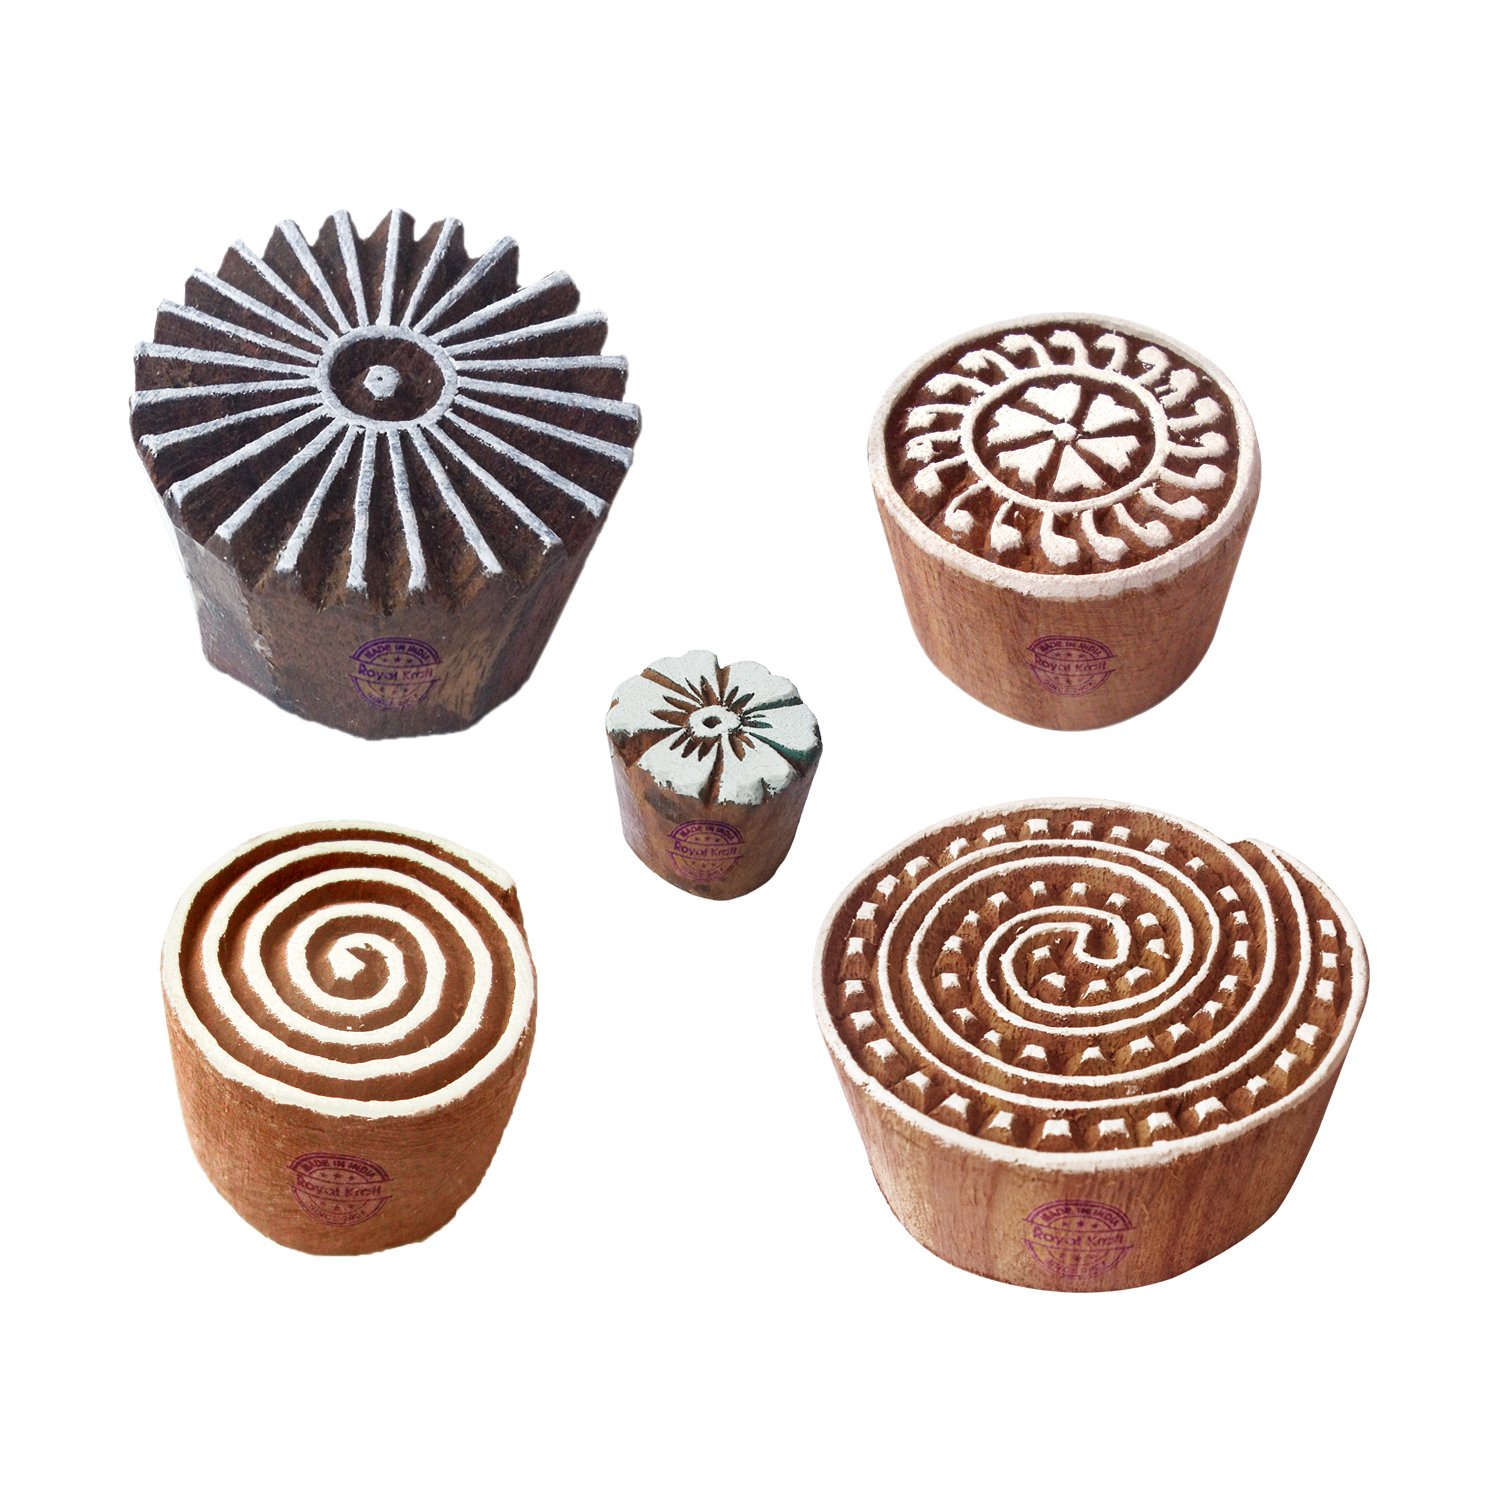 Royal Kraft Spiral and Floral Wood Block Stamps (Set of 5) to Make Henna Tattoos, Textile Block Prints, Scrapbook & Clay Projects